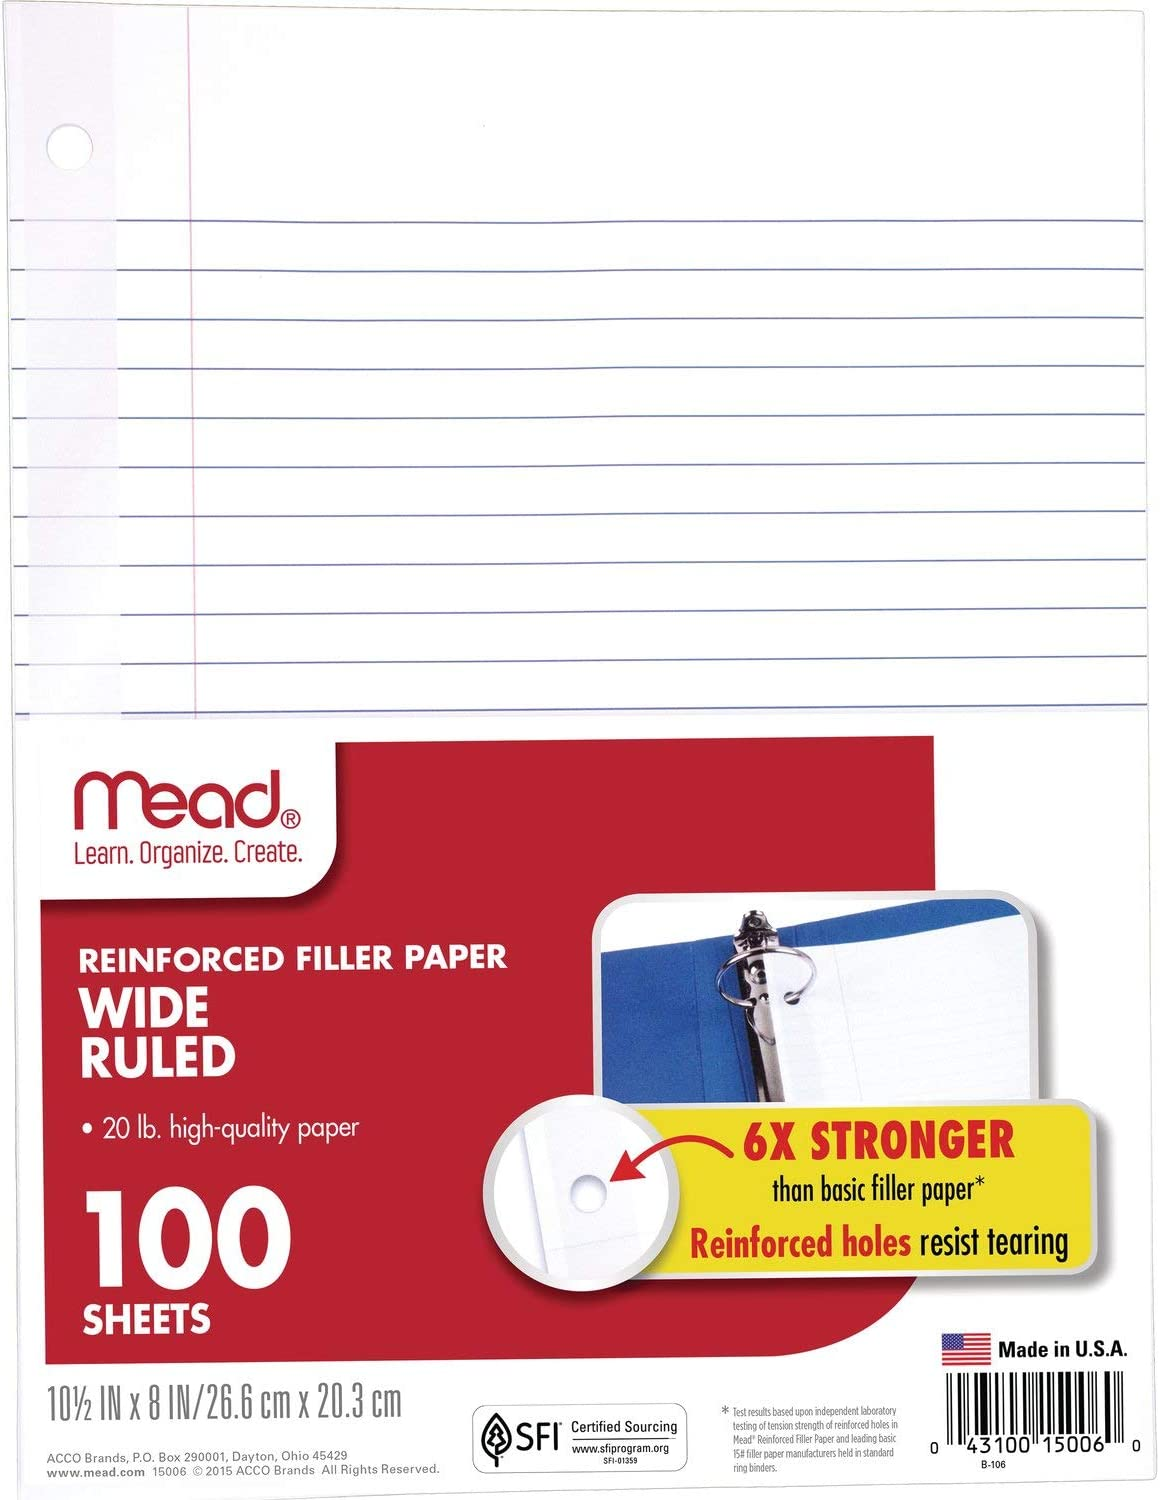 100 Sheets//Pack Wide Ruled 15000 Five Star Loose Leaf Paper Reinforced Filler Paper 1 Pack 10-1//2 x 8 inches 3 Hole Punched